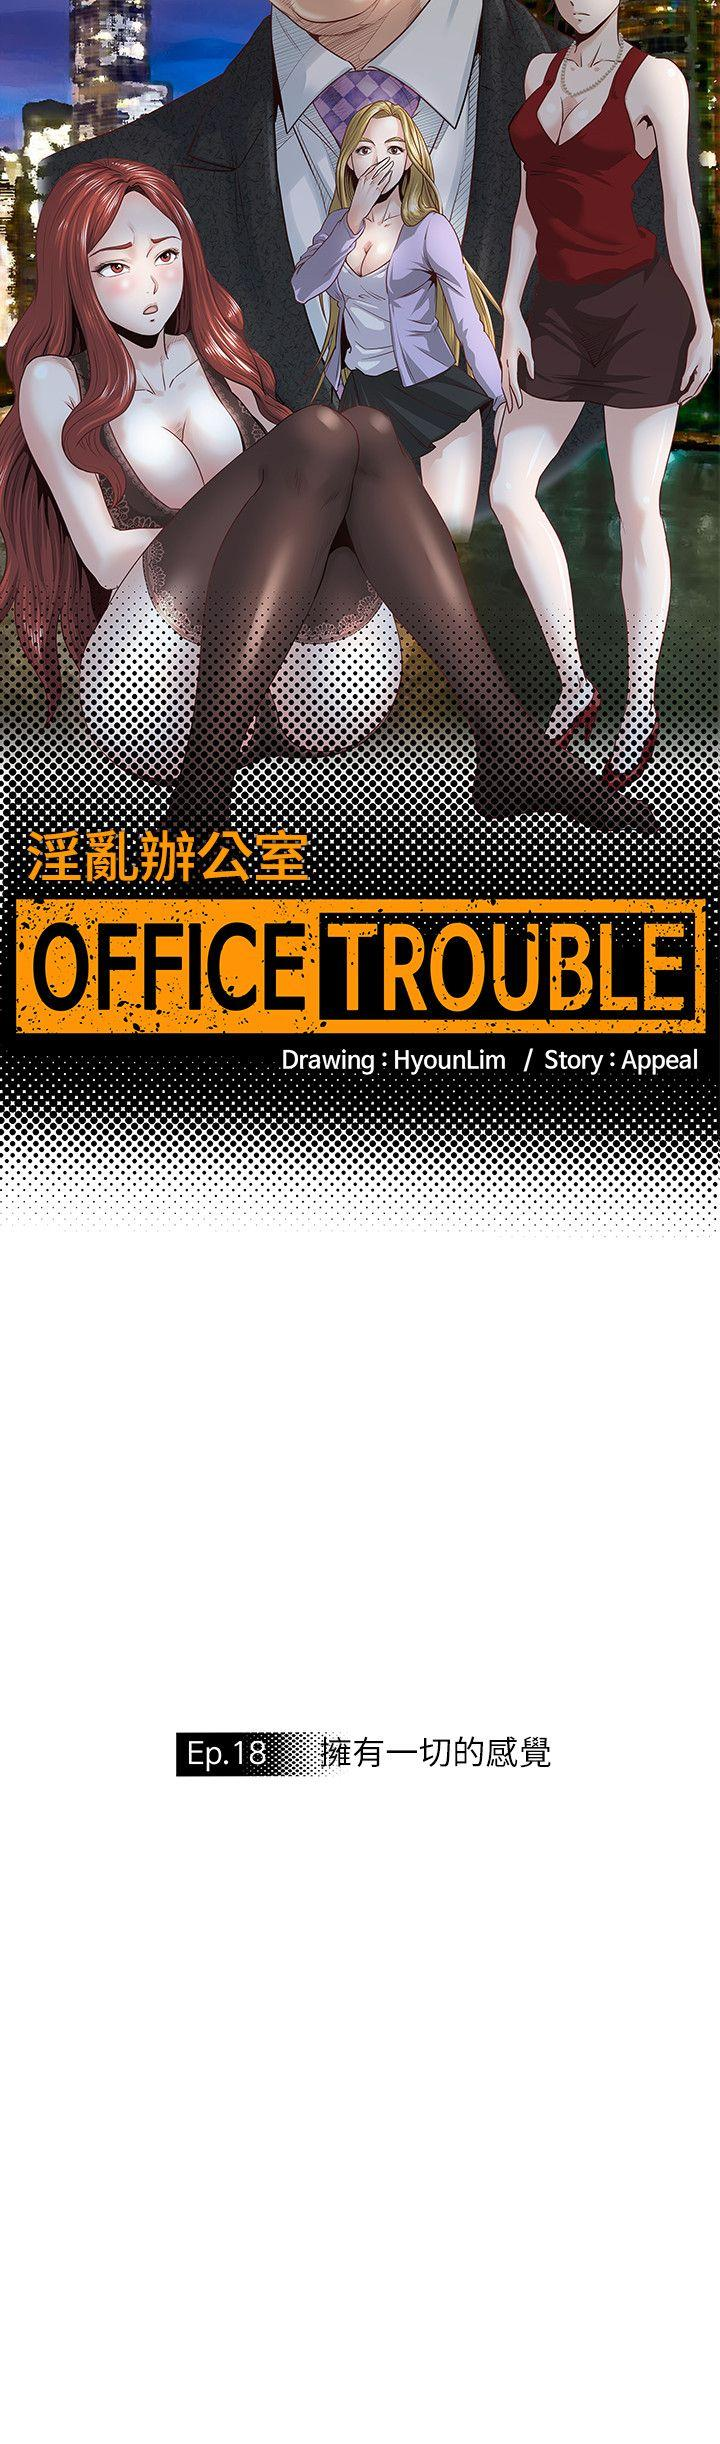 OFFICE TROUBLE 327